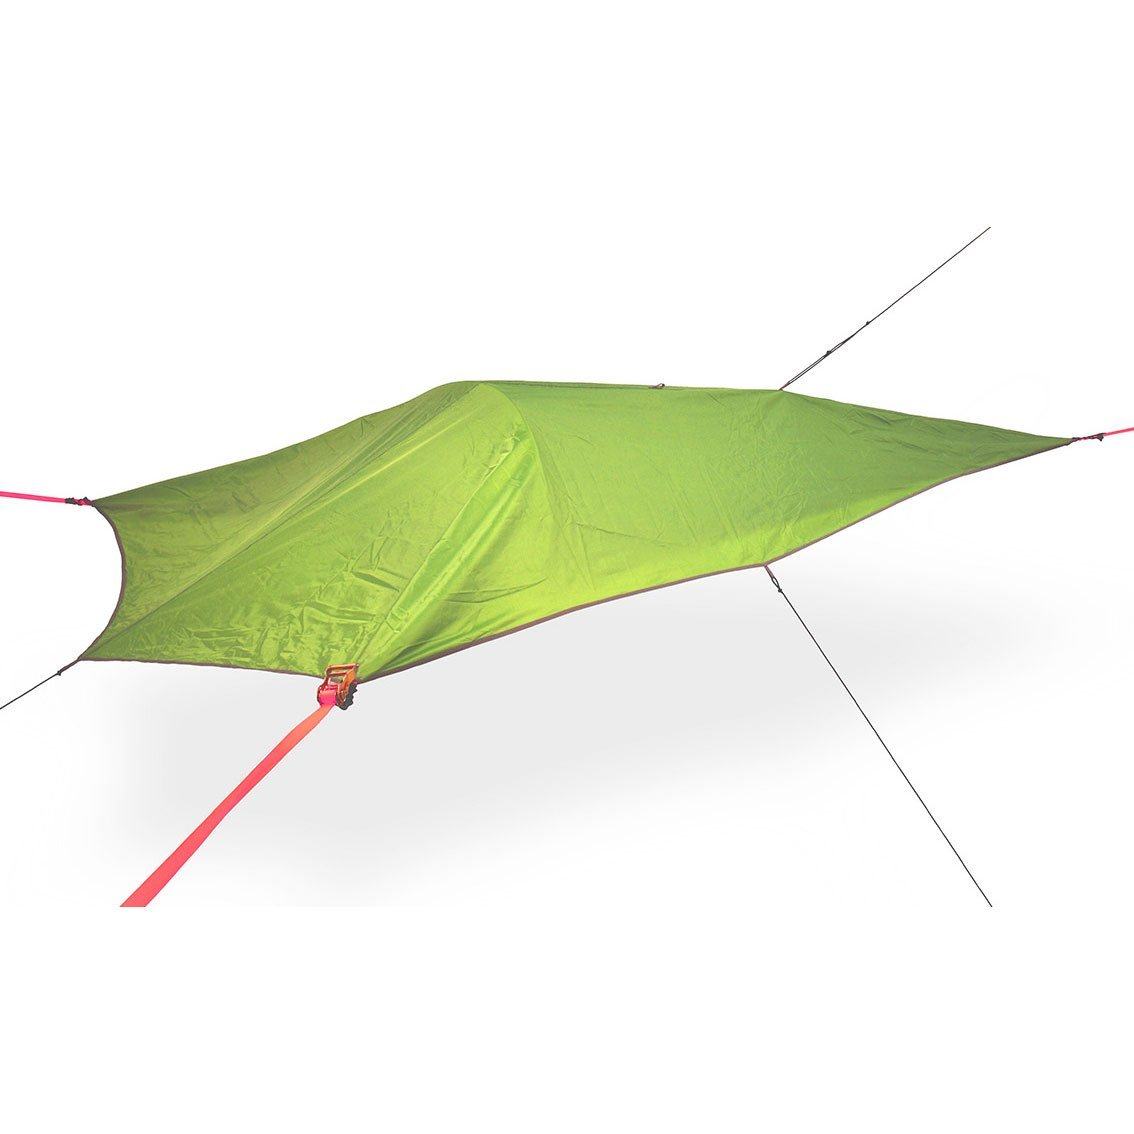 Tentsile | UNA Tree Tent | One Person Lightweight Hammock Tent | Fresh Green